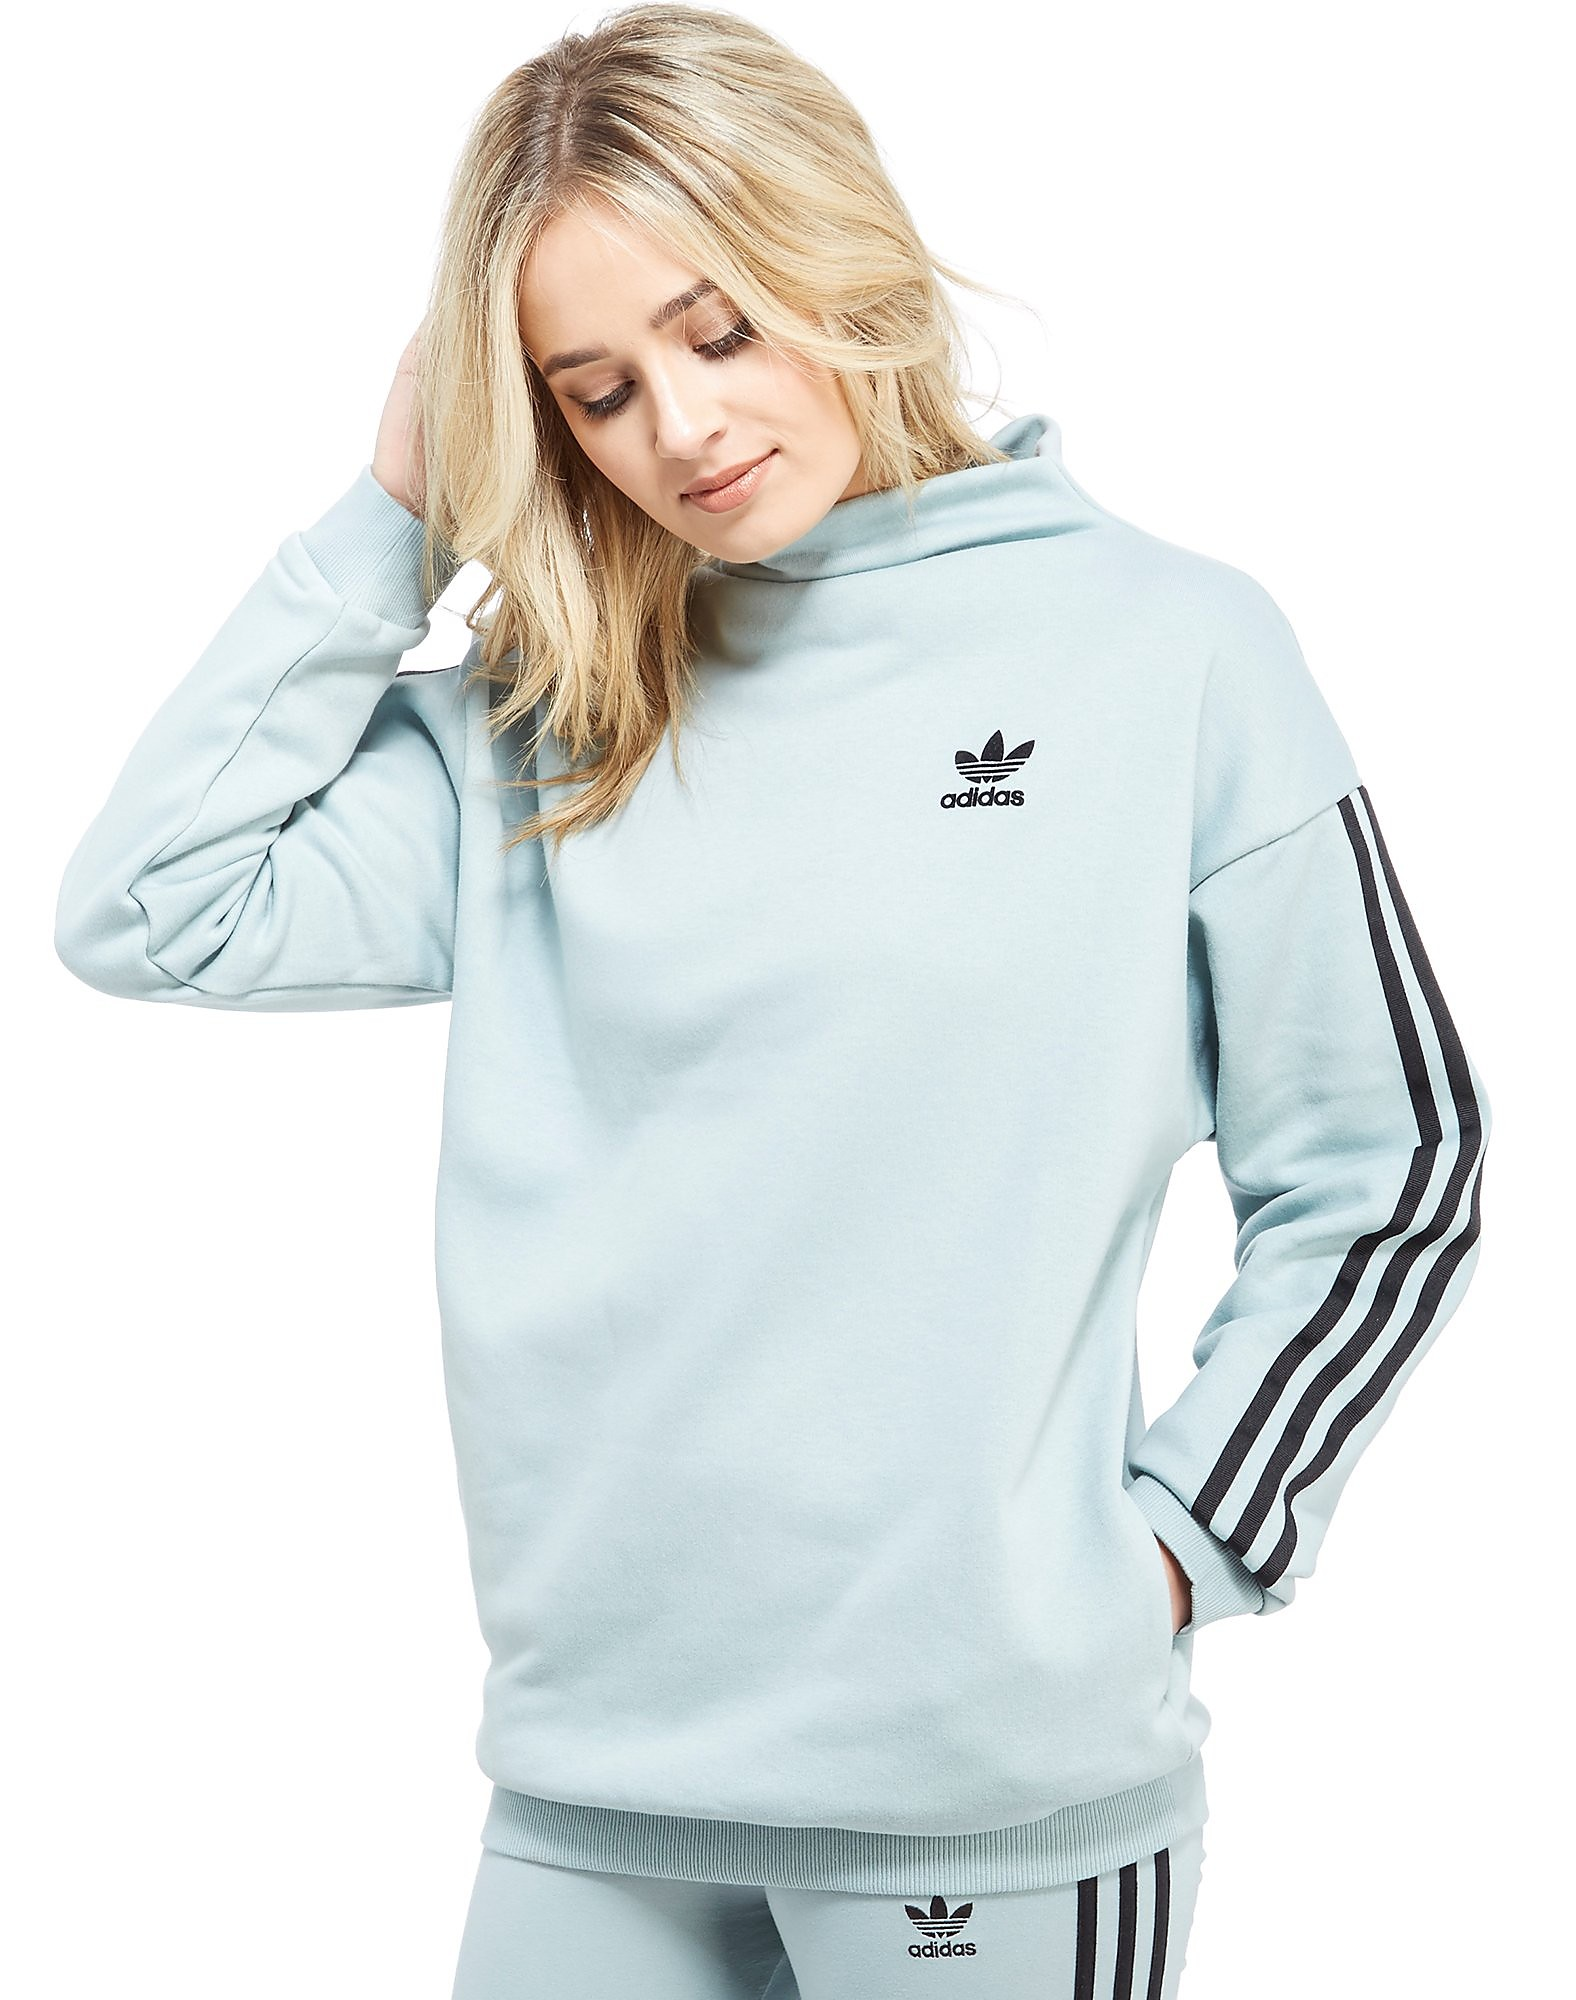 adidas Originals 3 Stripe Mock Neck Crew Sweatshirt